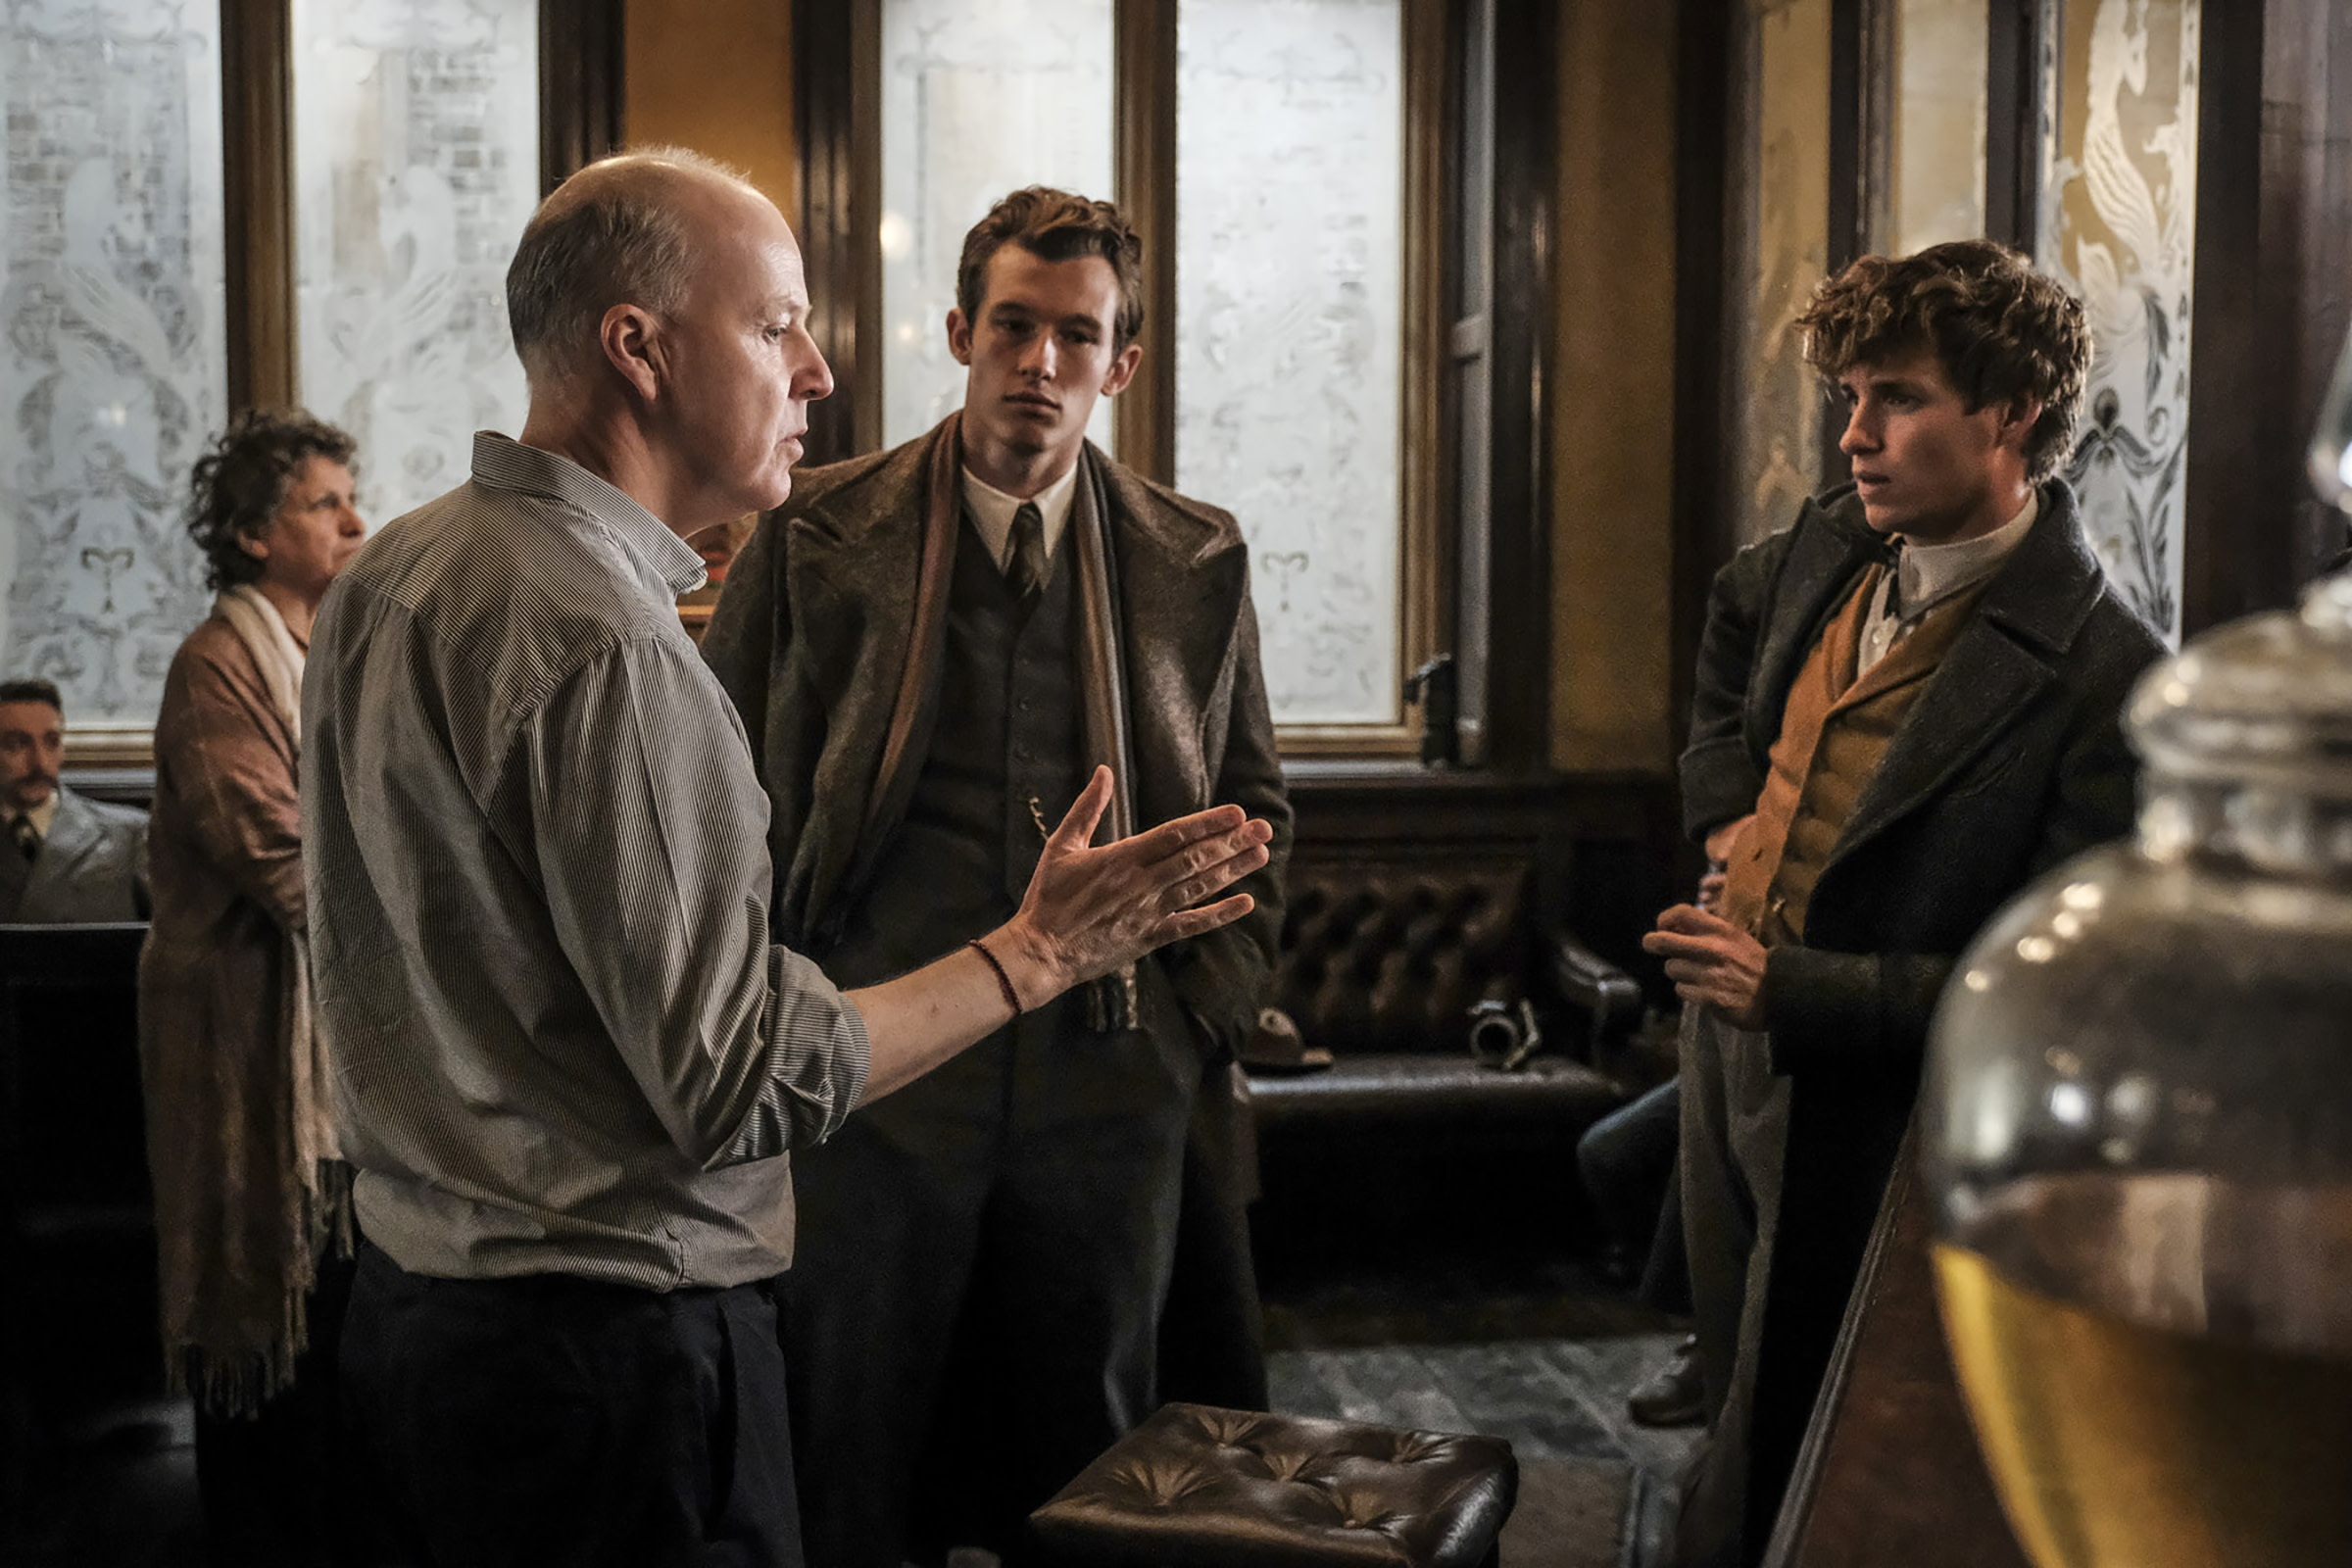 On the Fantastic Beasts: The Crimes of Grindelwald set with David Yates, Callum Turner and Eddie Redmayne